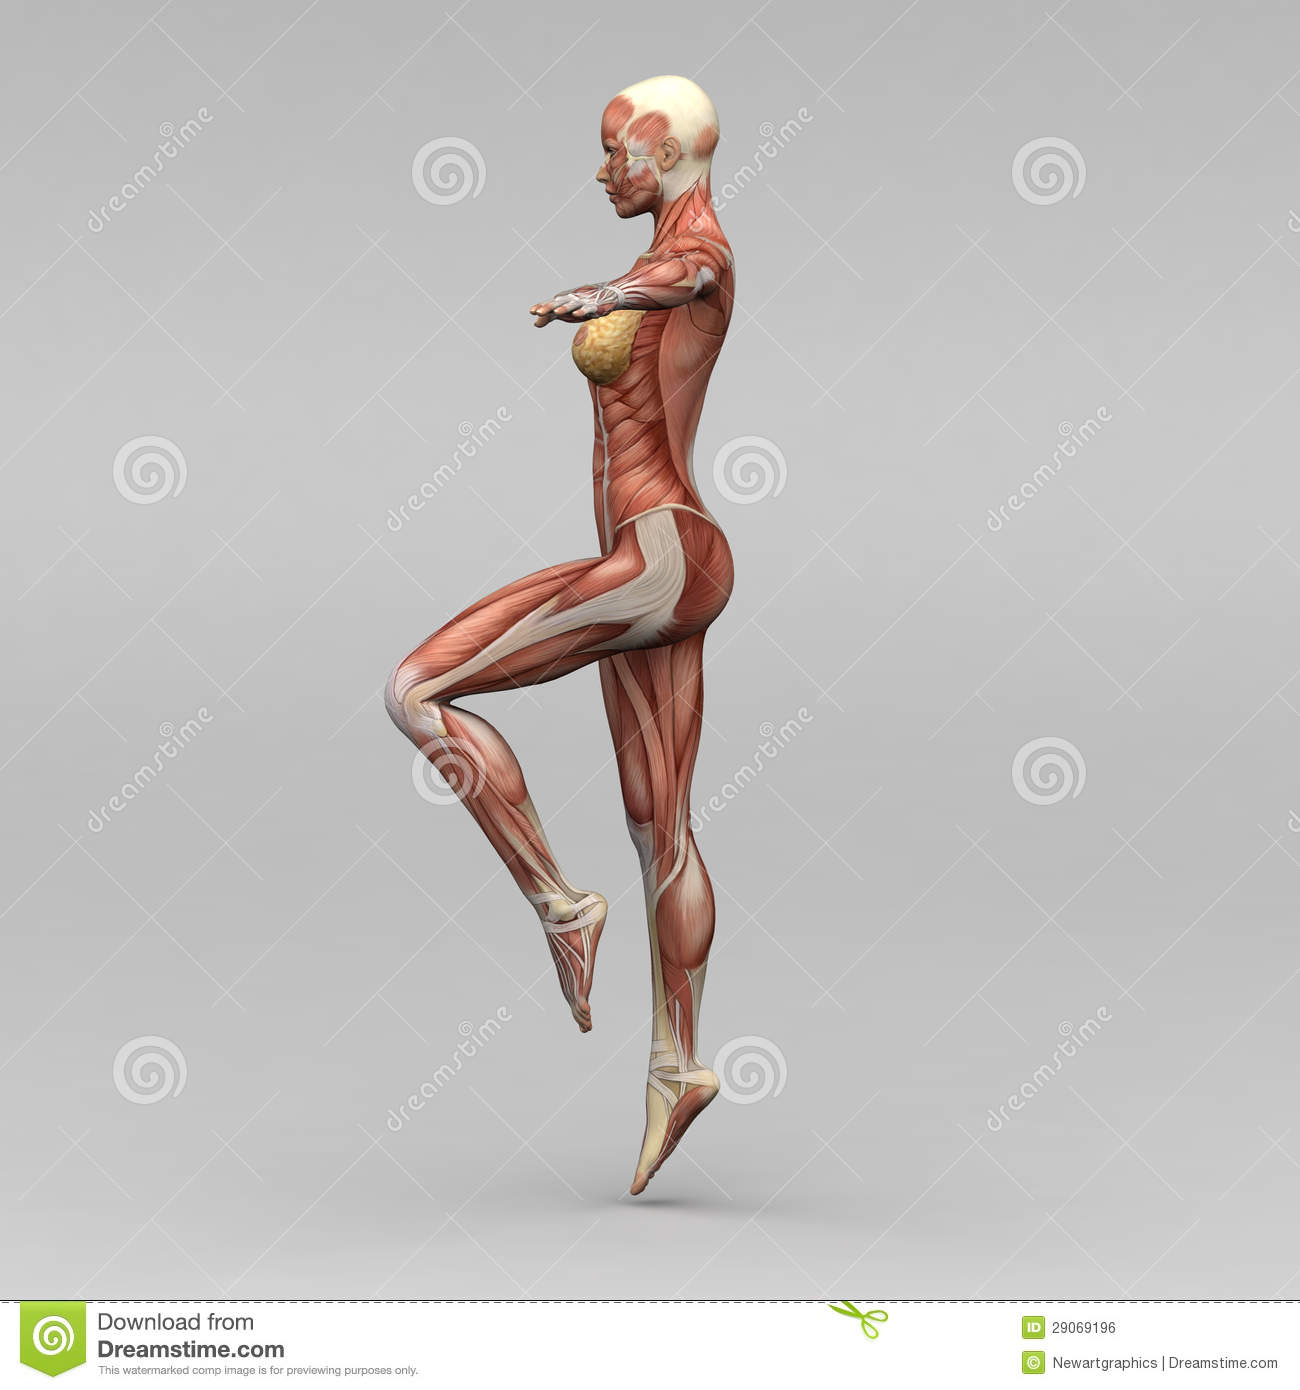 Female anatomy stock photos, liveperson.net/hc